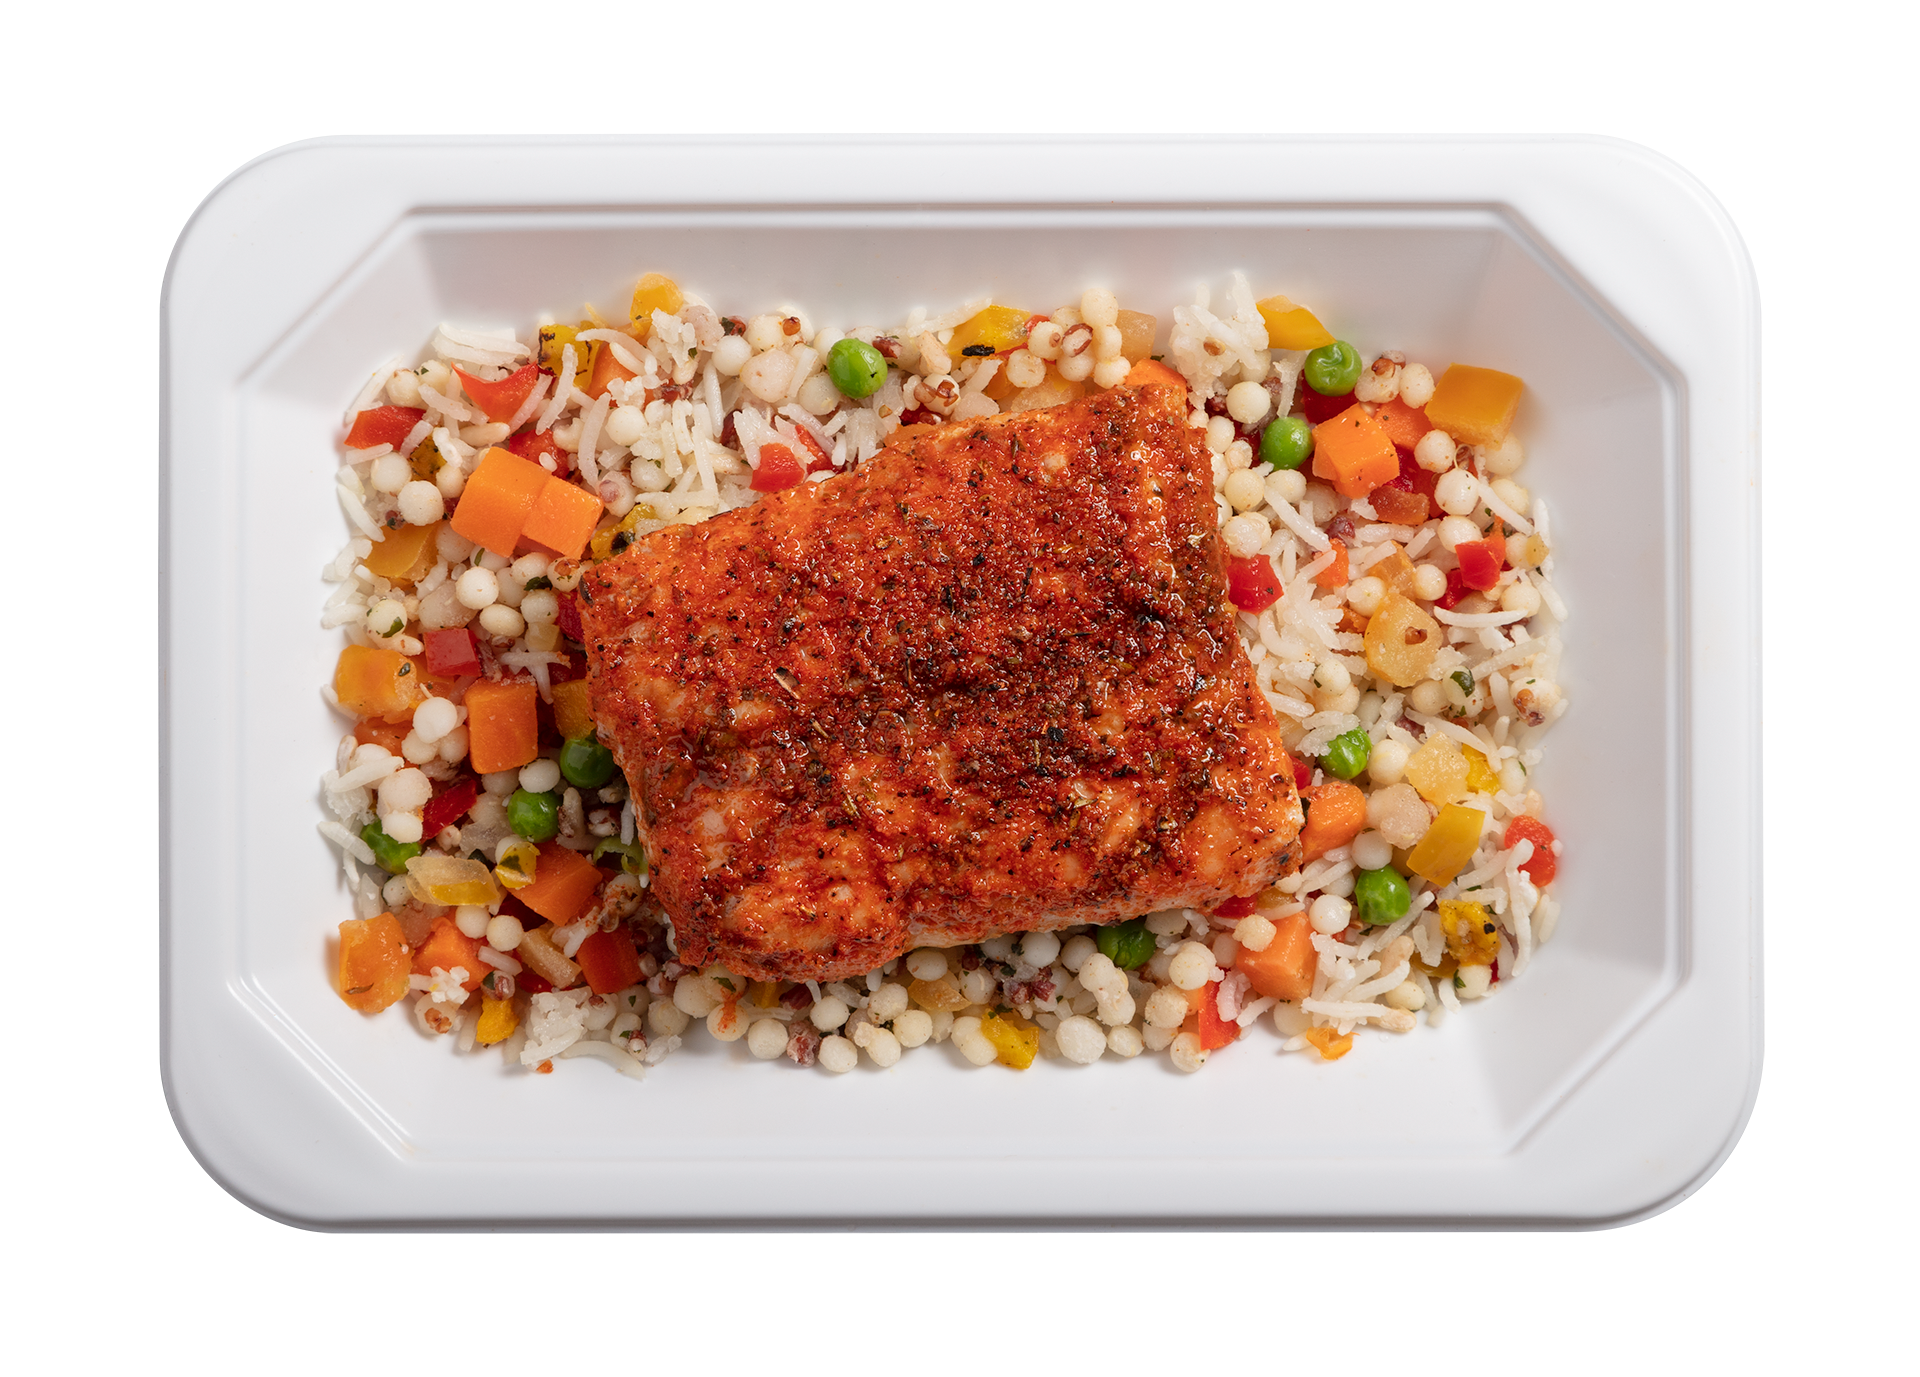 Blackened Salmon microwavable meal in its packaging tray.